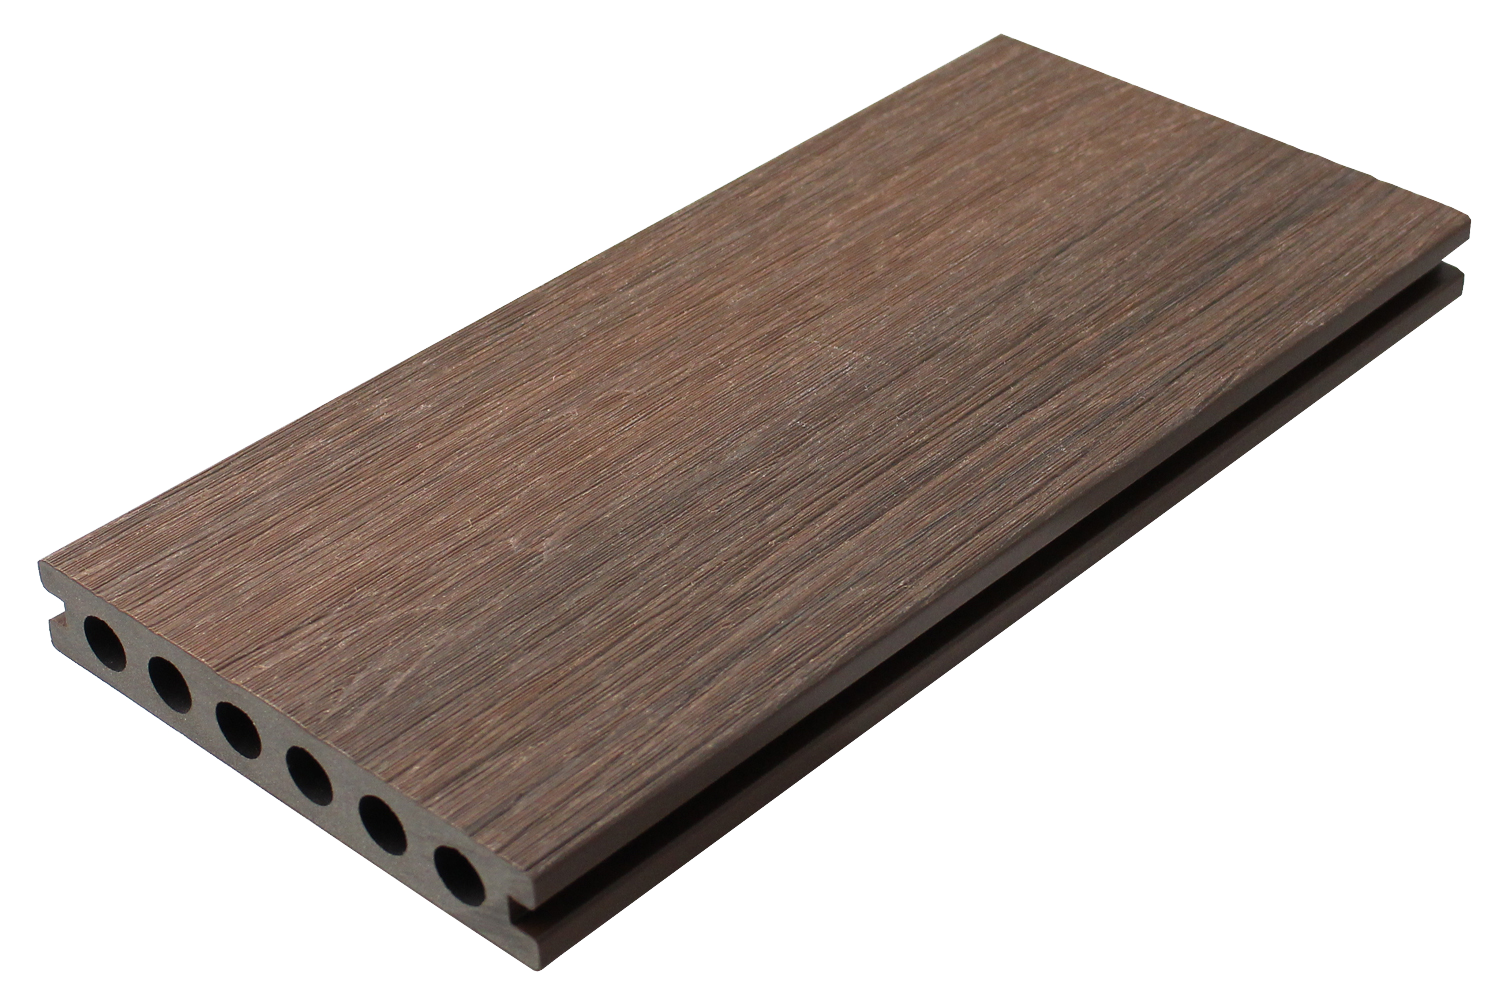 Composite Decking Panels : Composite decking board walnut wood eco life products